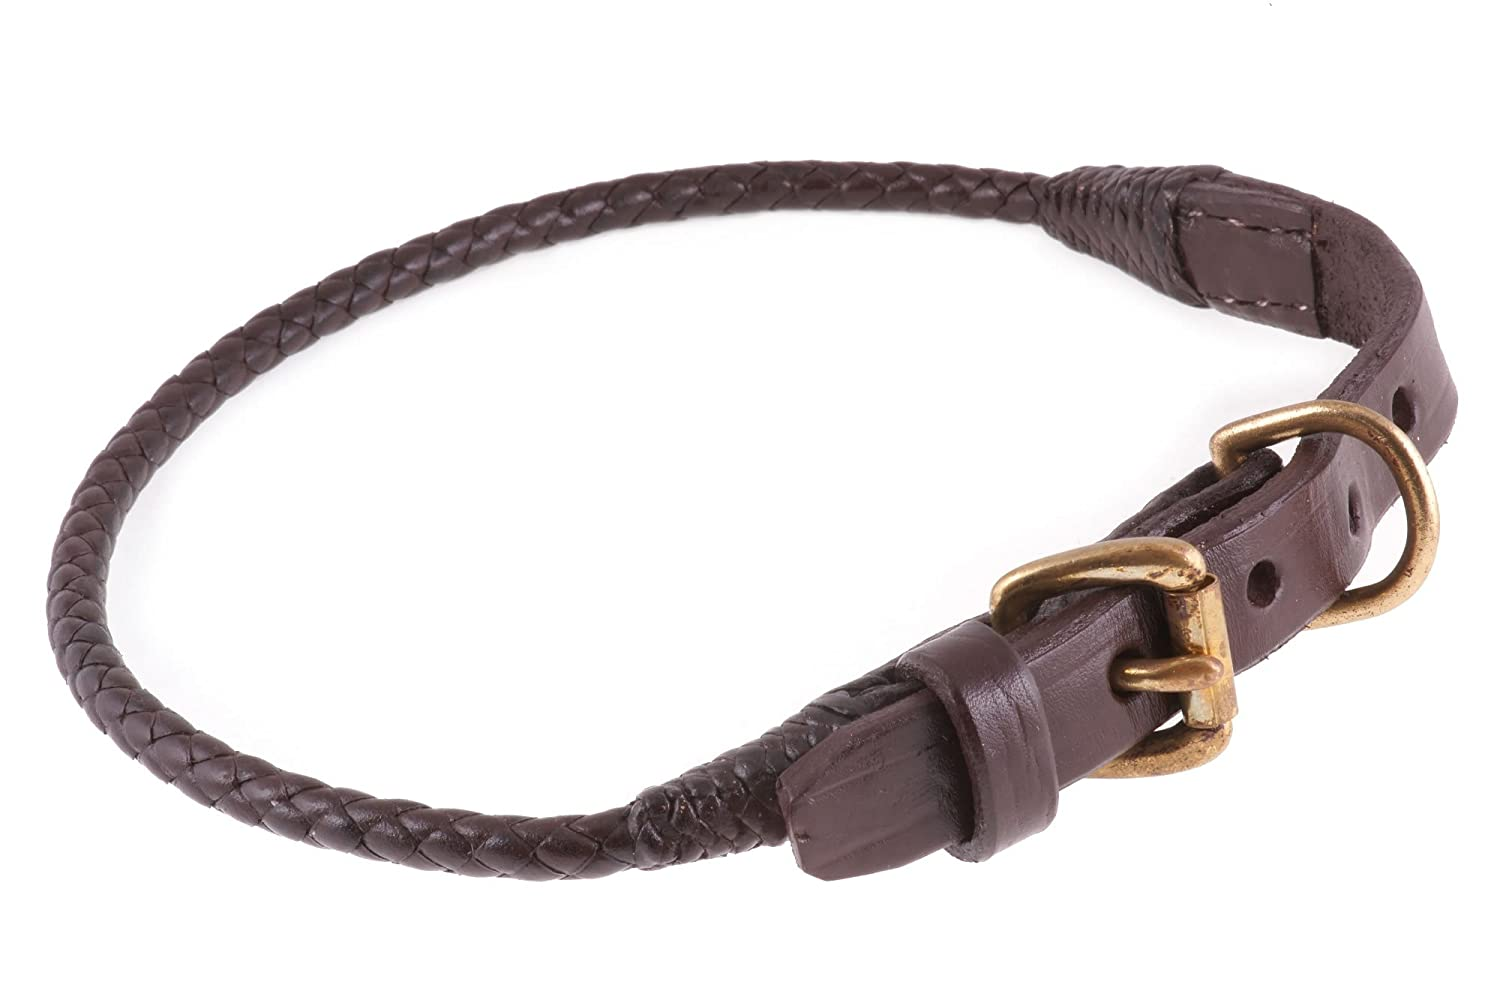 Alvalley Braided Collar with Buckle for Dogs 20in Medium